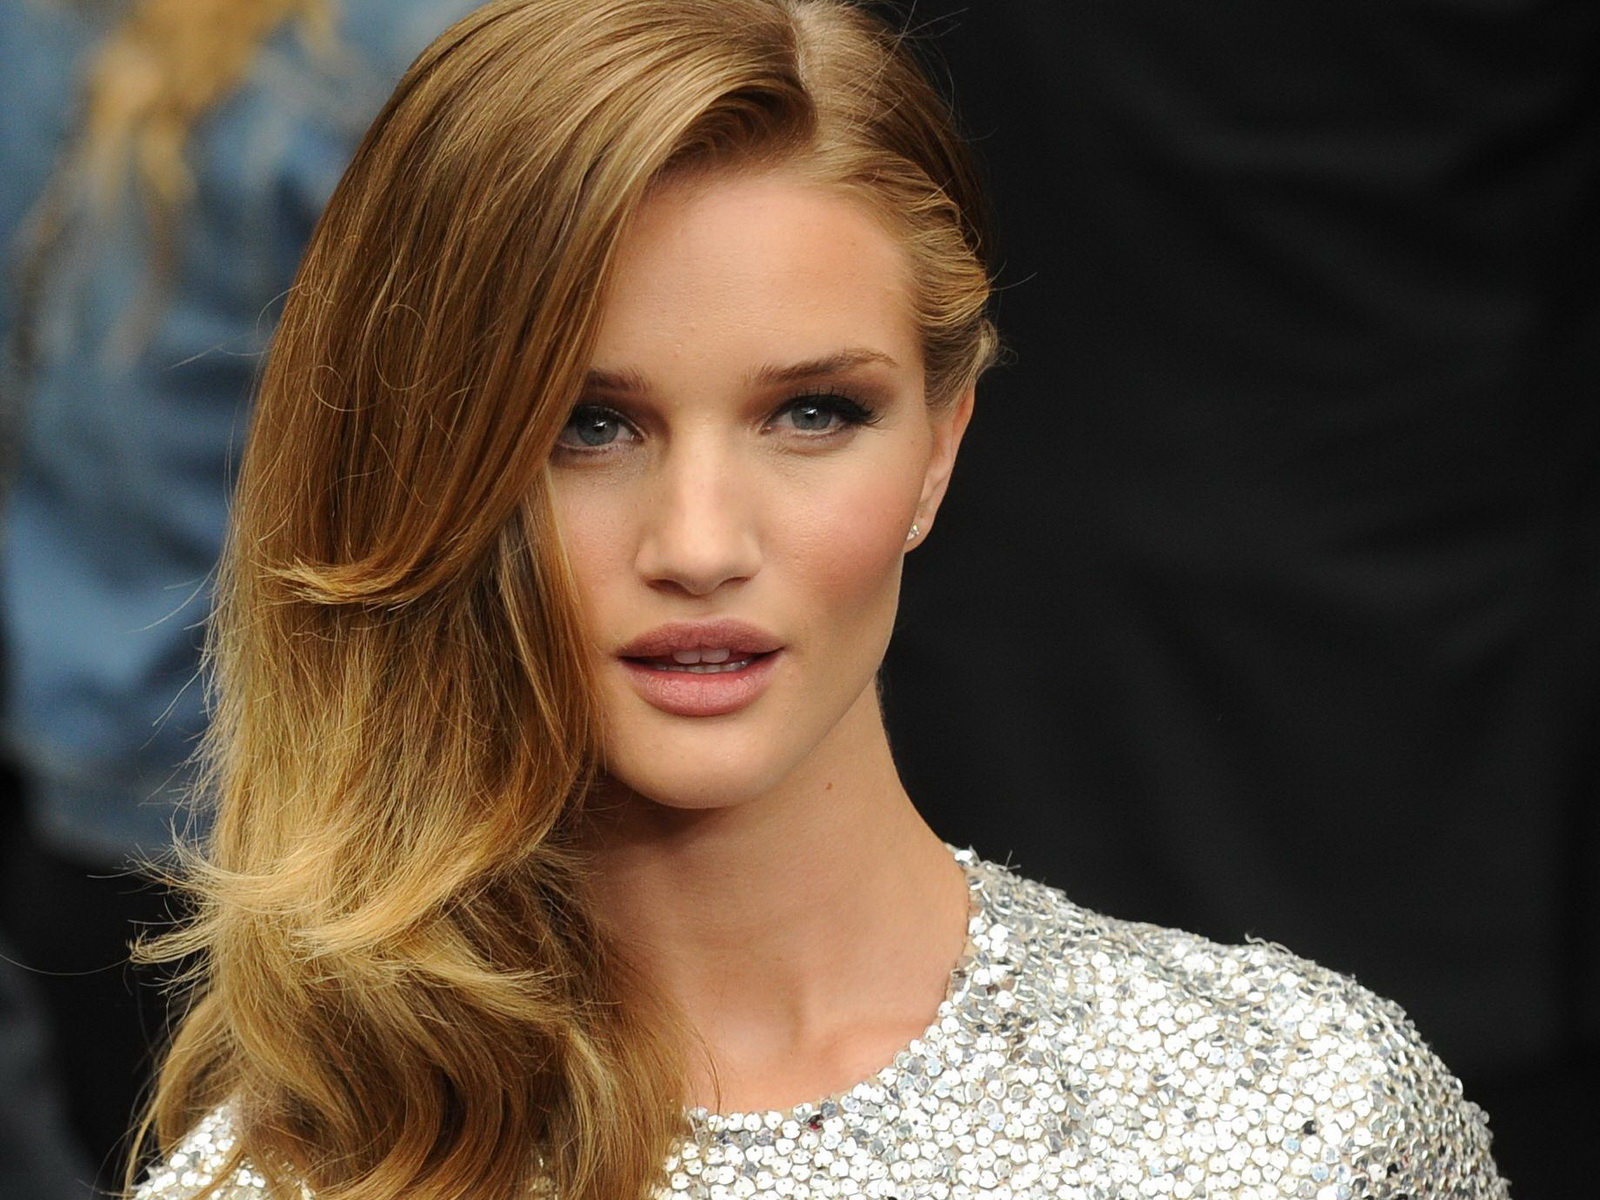 rosie huntington whiteley wallpaper 24169